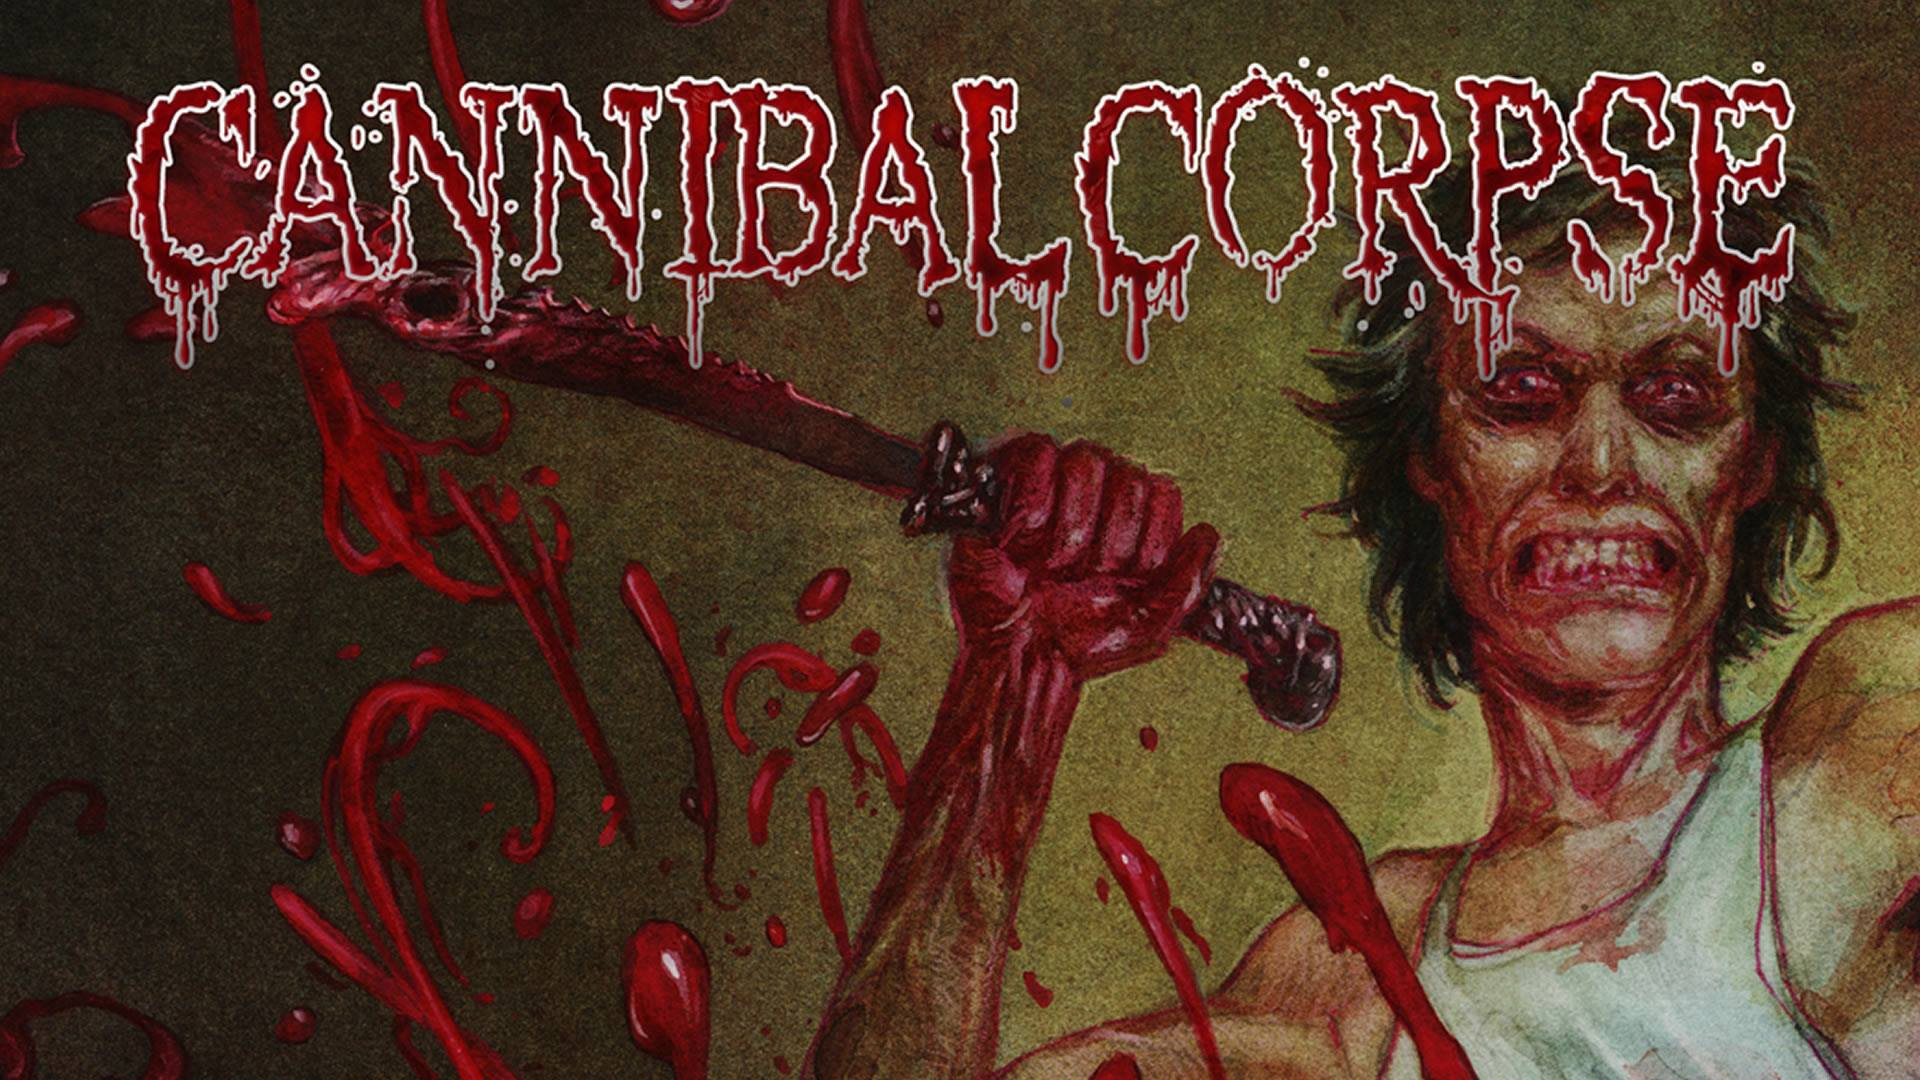 Music Cannibal Corpse Desktop Wallpaper Nr 39229 Cannibal Corpse